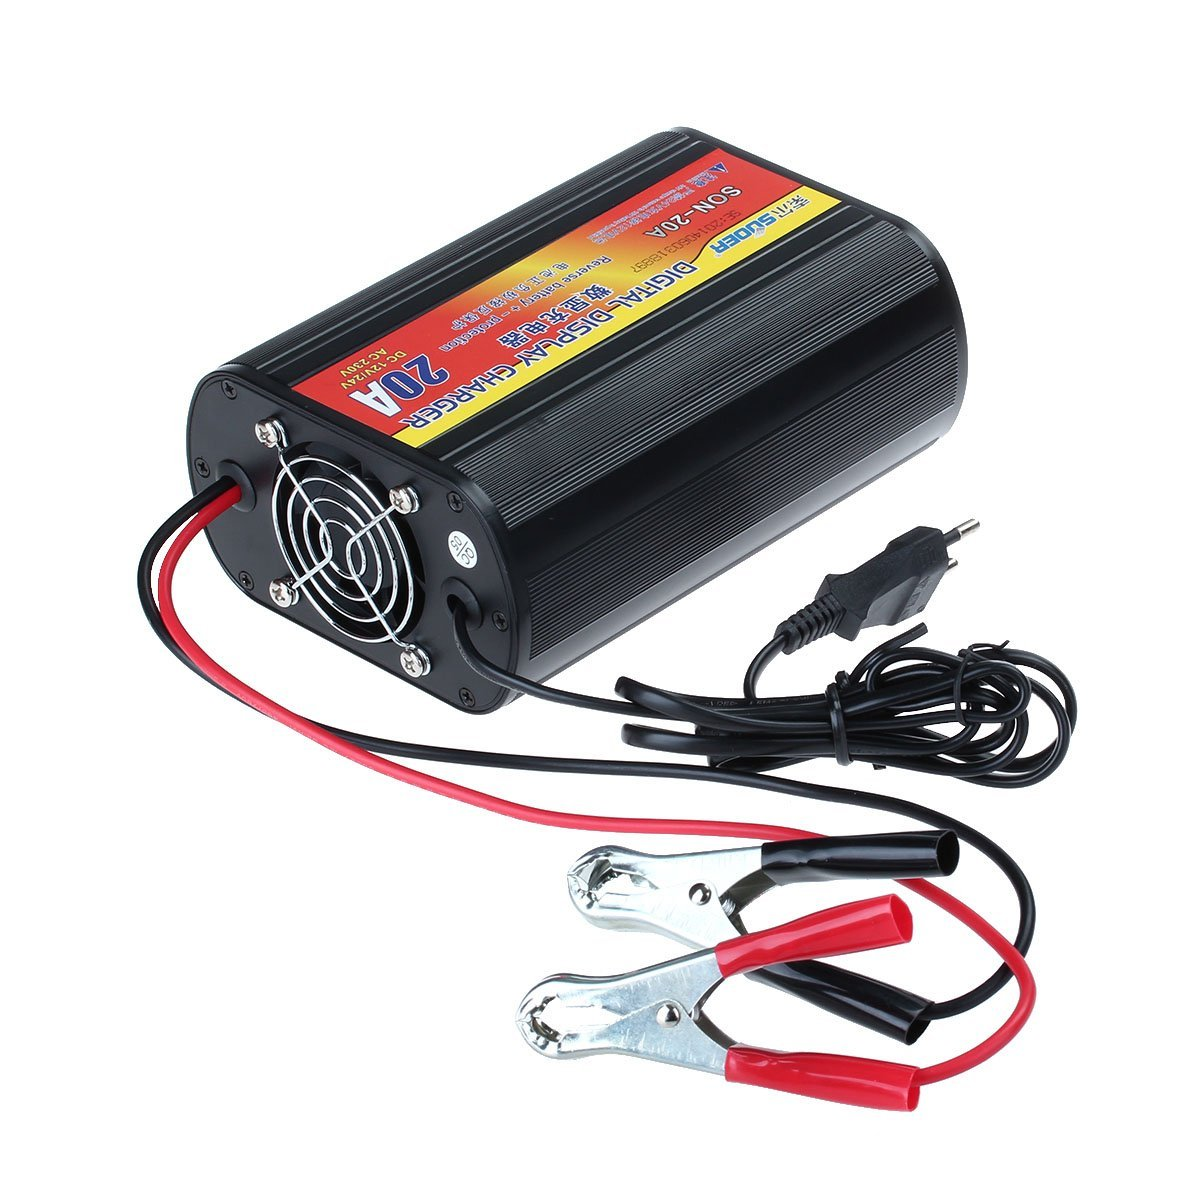 Audio & Video Accessories HITSAN Suoer 12V DC to AC Inverter Car Power Inverter 230V 1200W Inverter One Piece